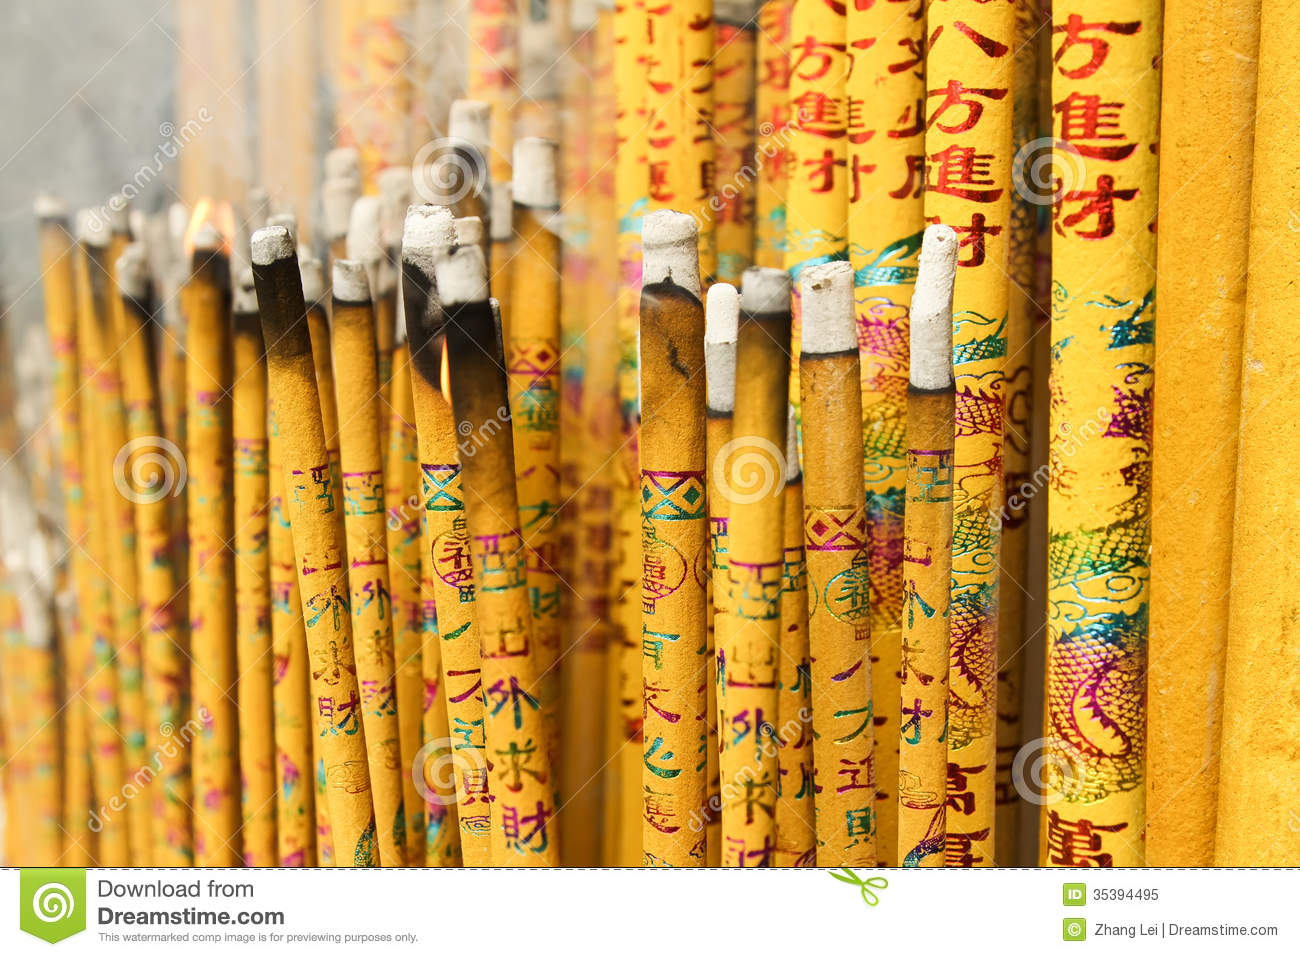 Burn incense stock image  Image of religious, bless